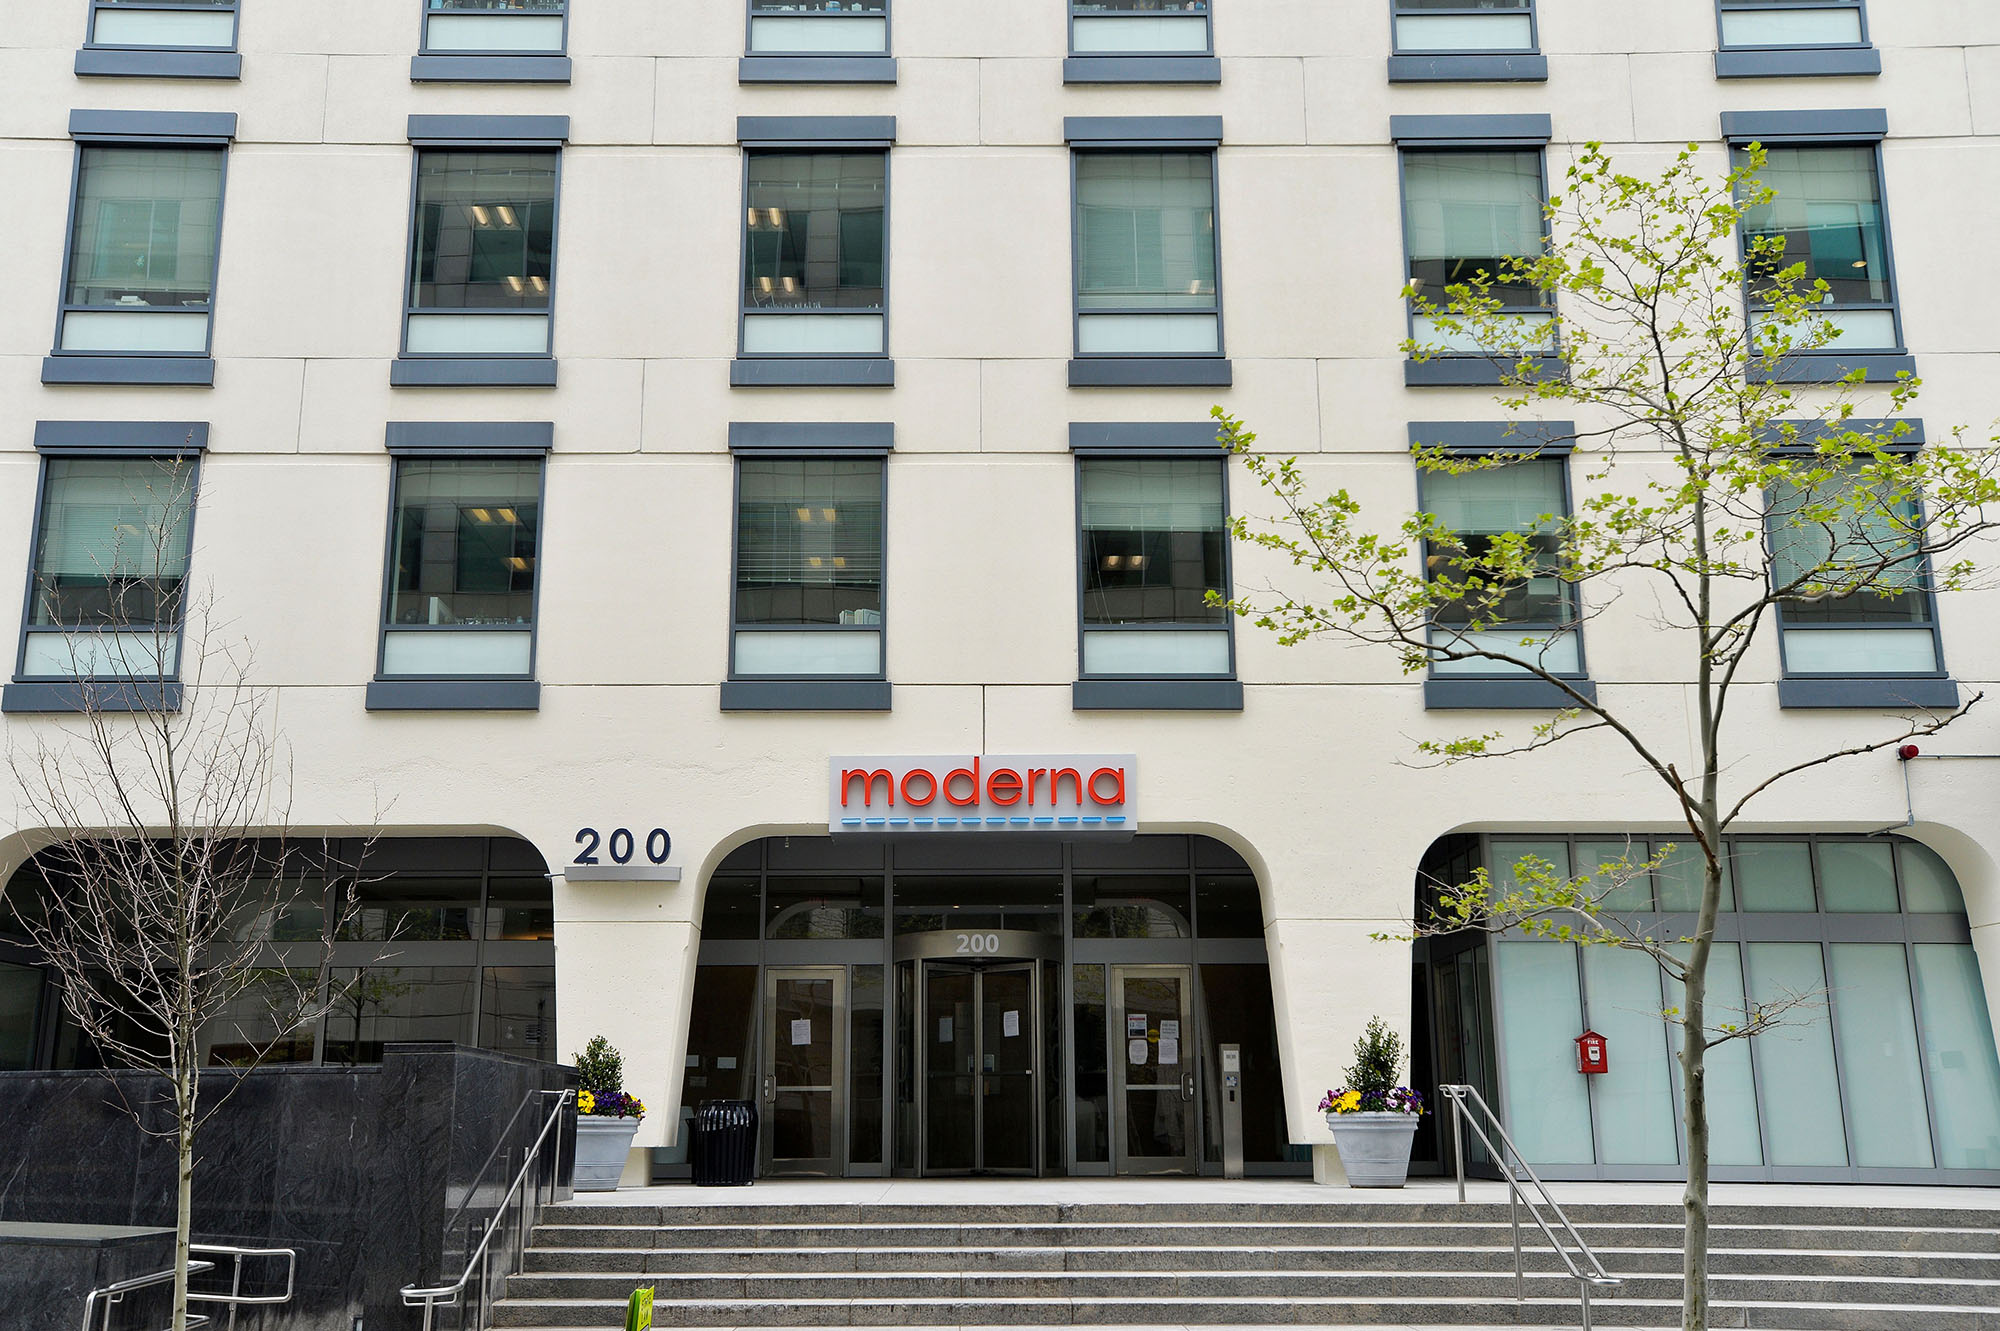 The Moderna headquarters in Cambridge, Massachusetts, on May 18, 2020.